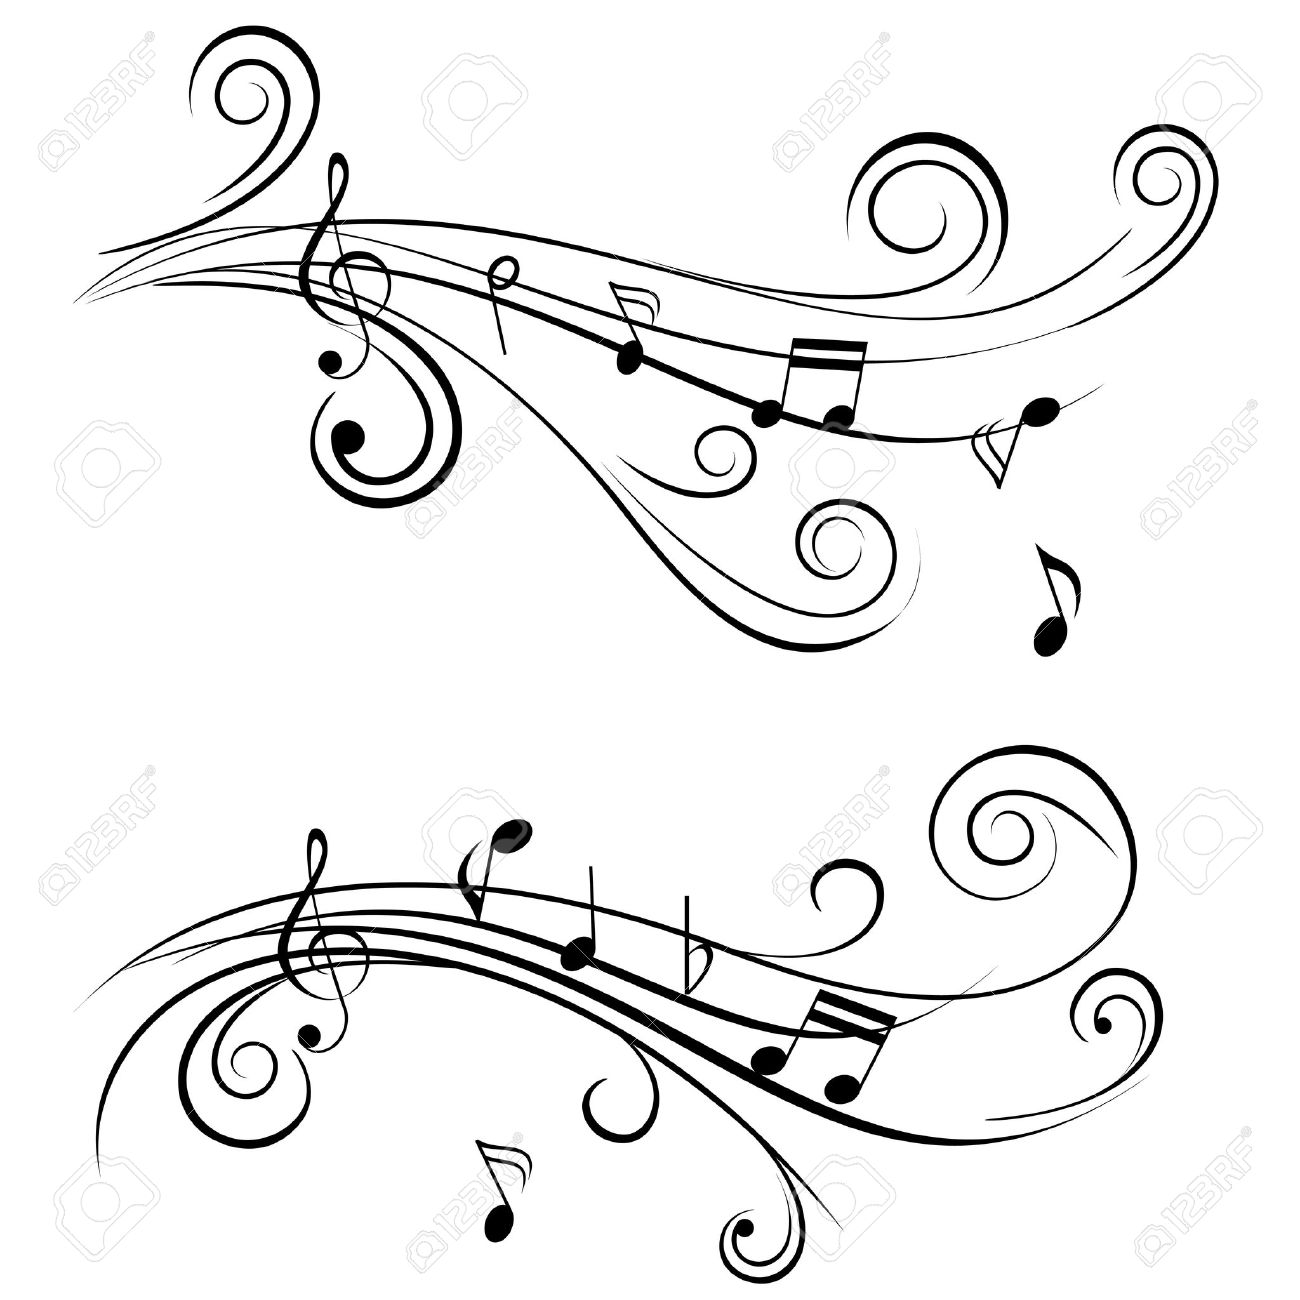 Ornamental Music Notes With Swirls On White Background Royalty